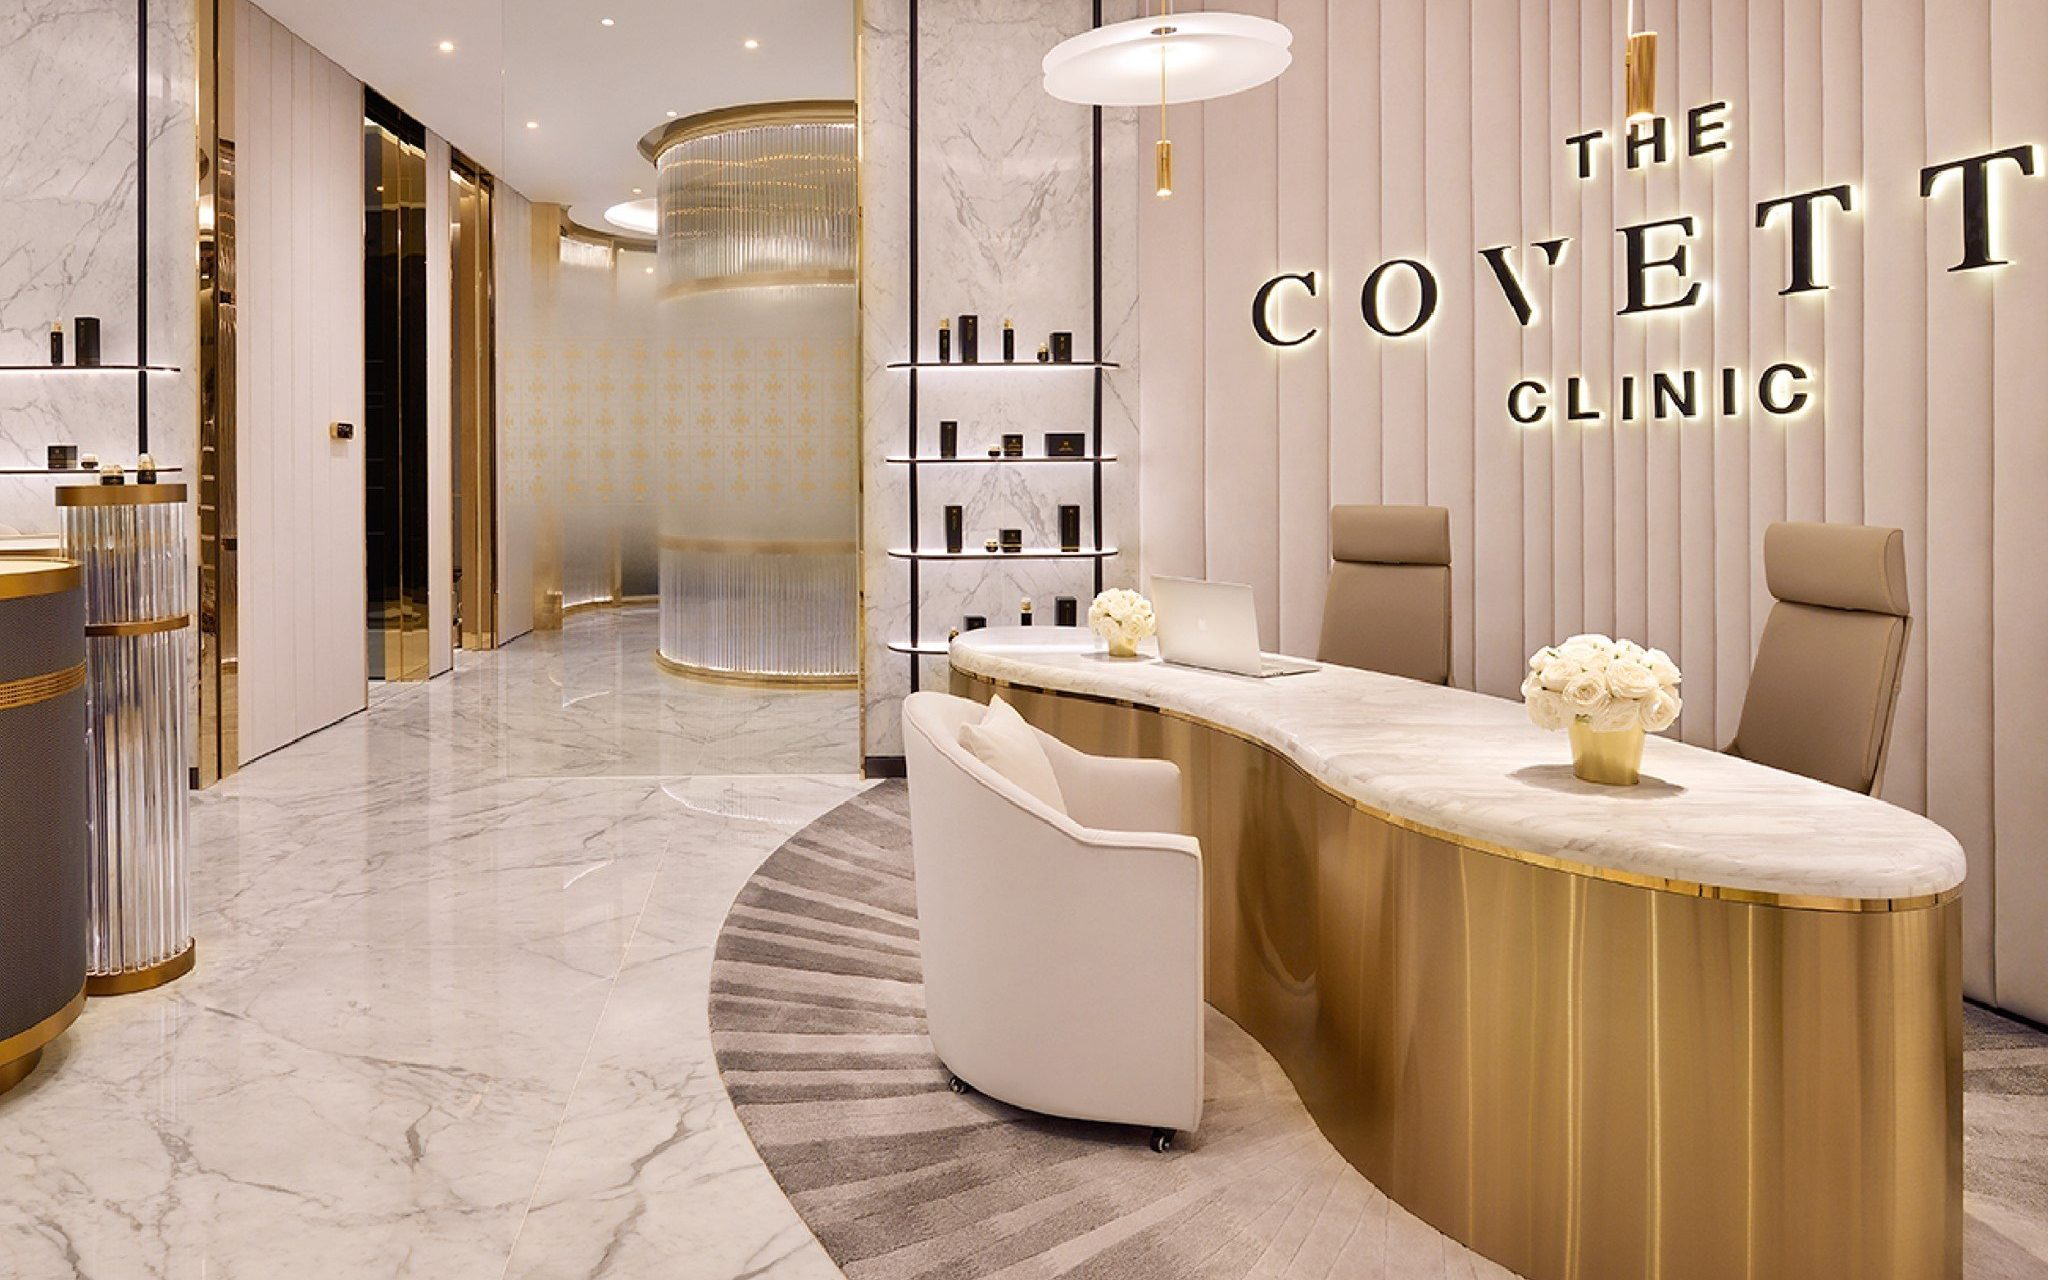 Covette Plastic Surgery & Aesthetics Clinic otoplasty   Taken from Facebook